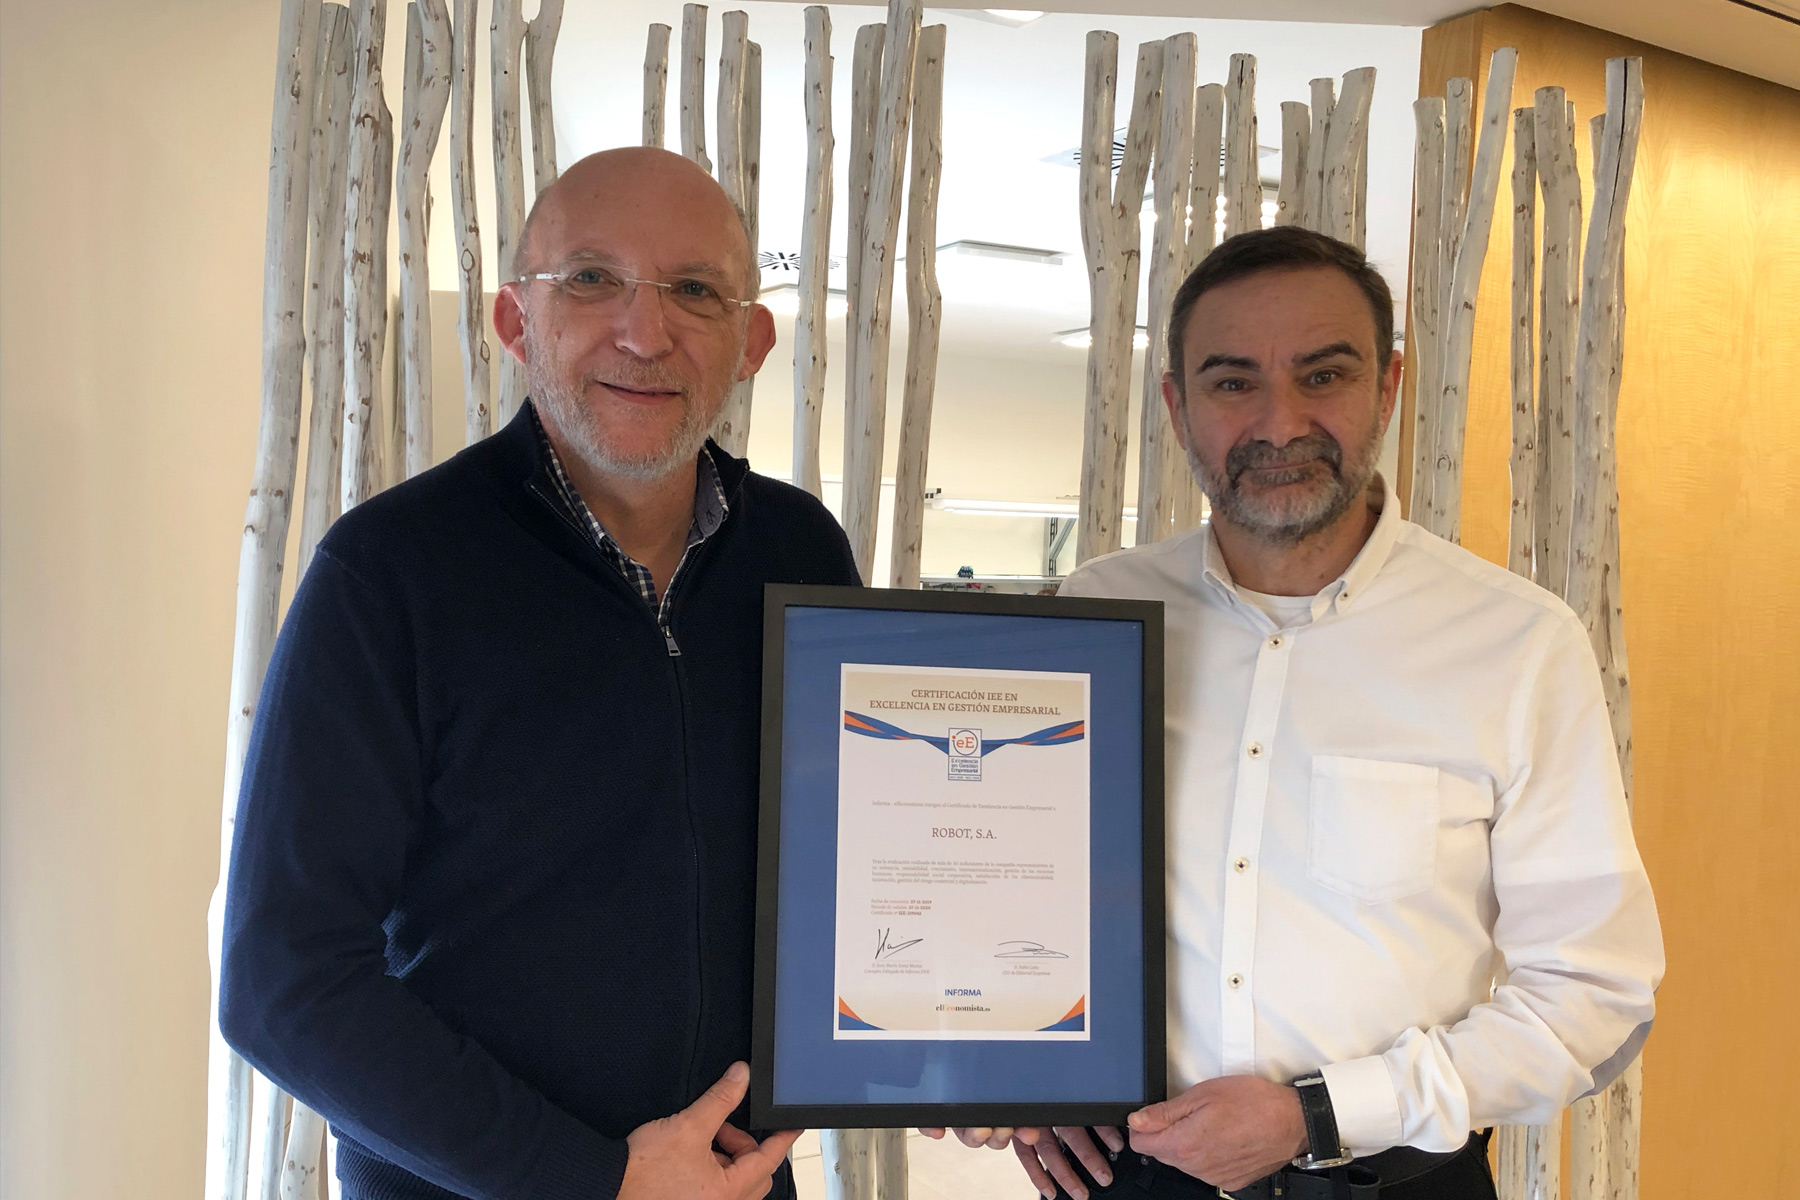 Robot receives the IeE certification of Excellence in Business Management